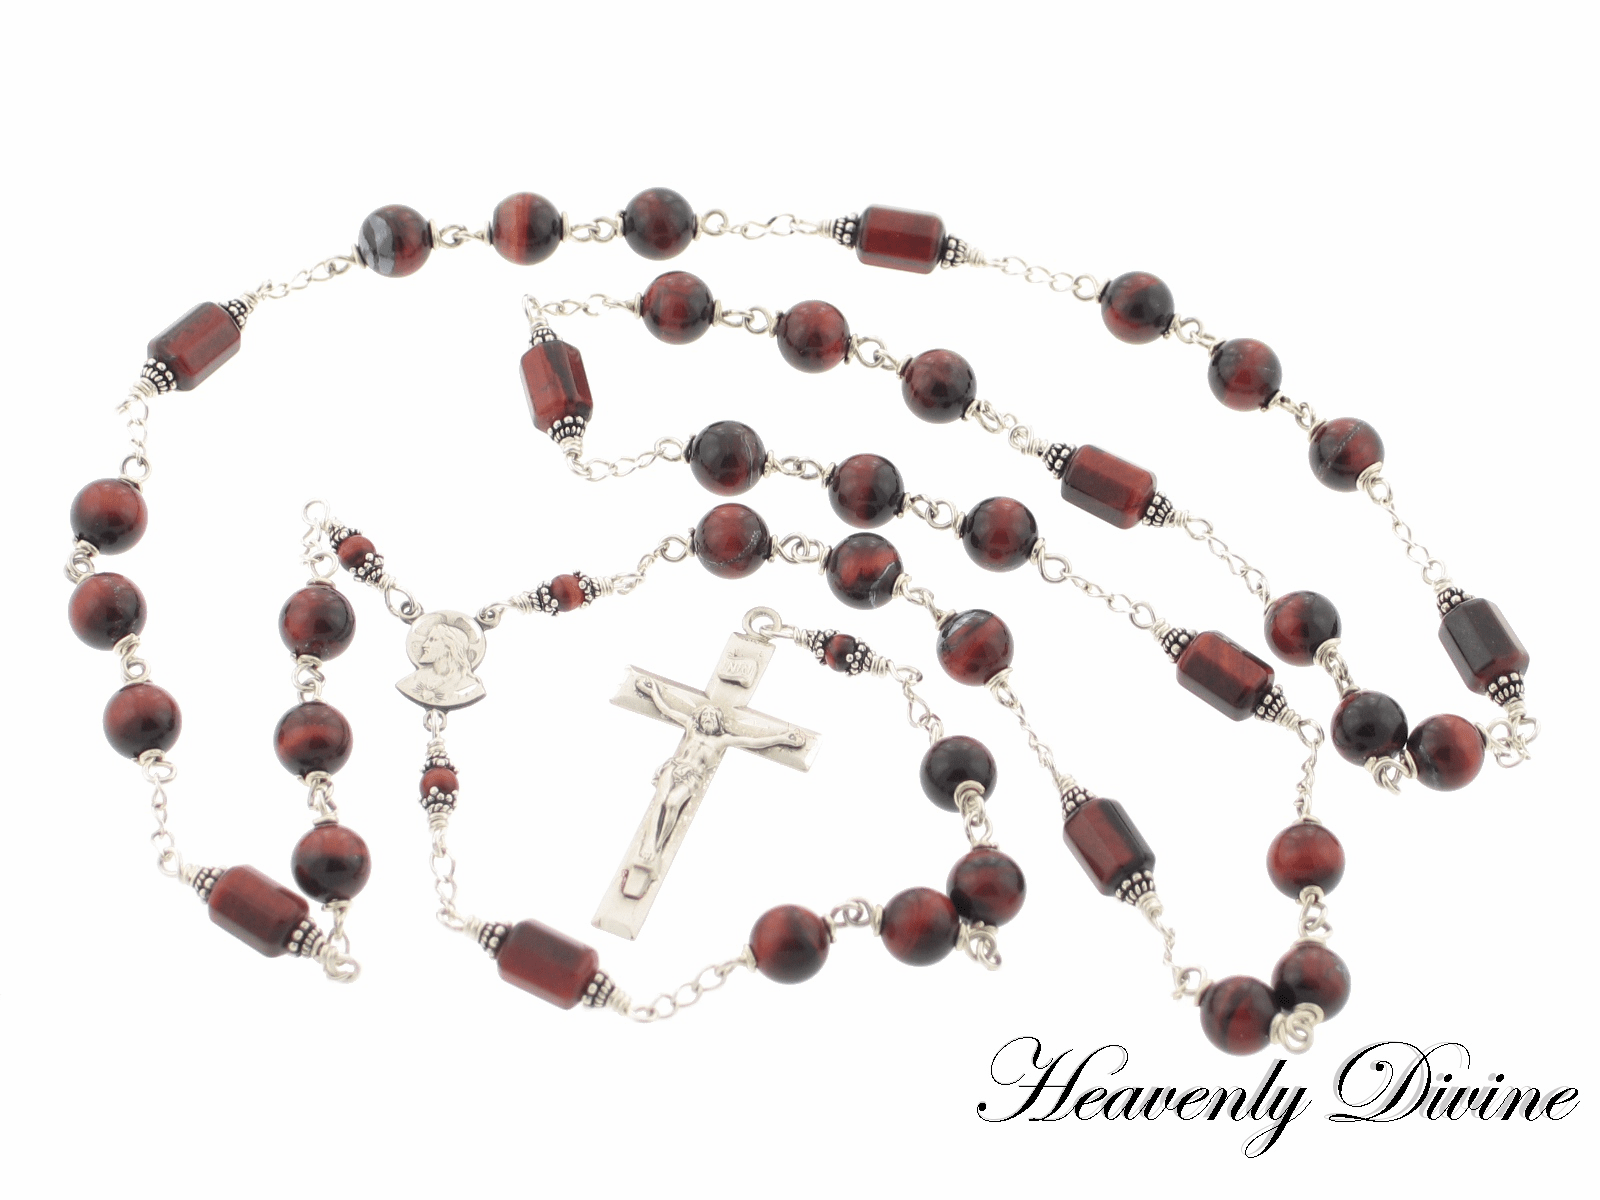 Handmade Chaplet of the Holy Angels - Guardian Angel Chaplet by Heavenly Divine